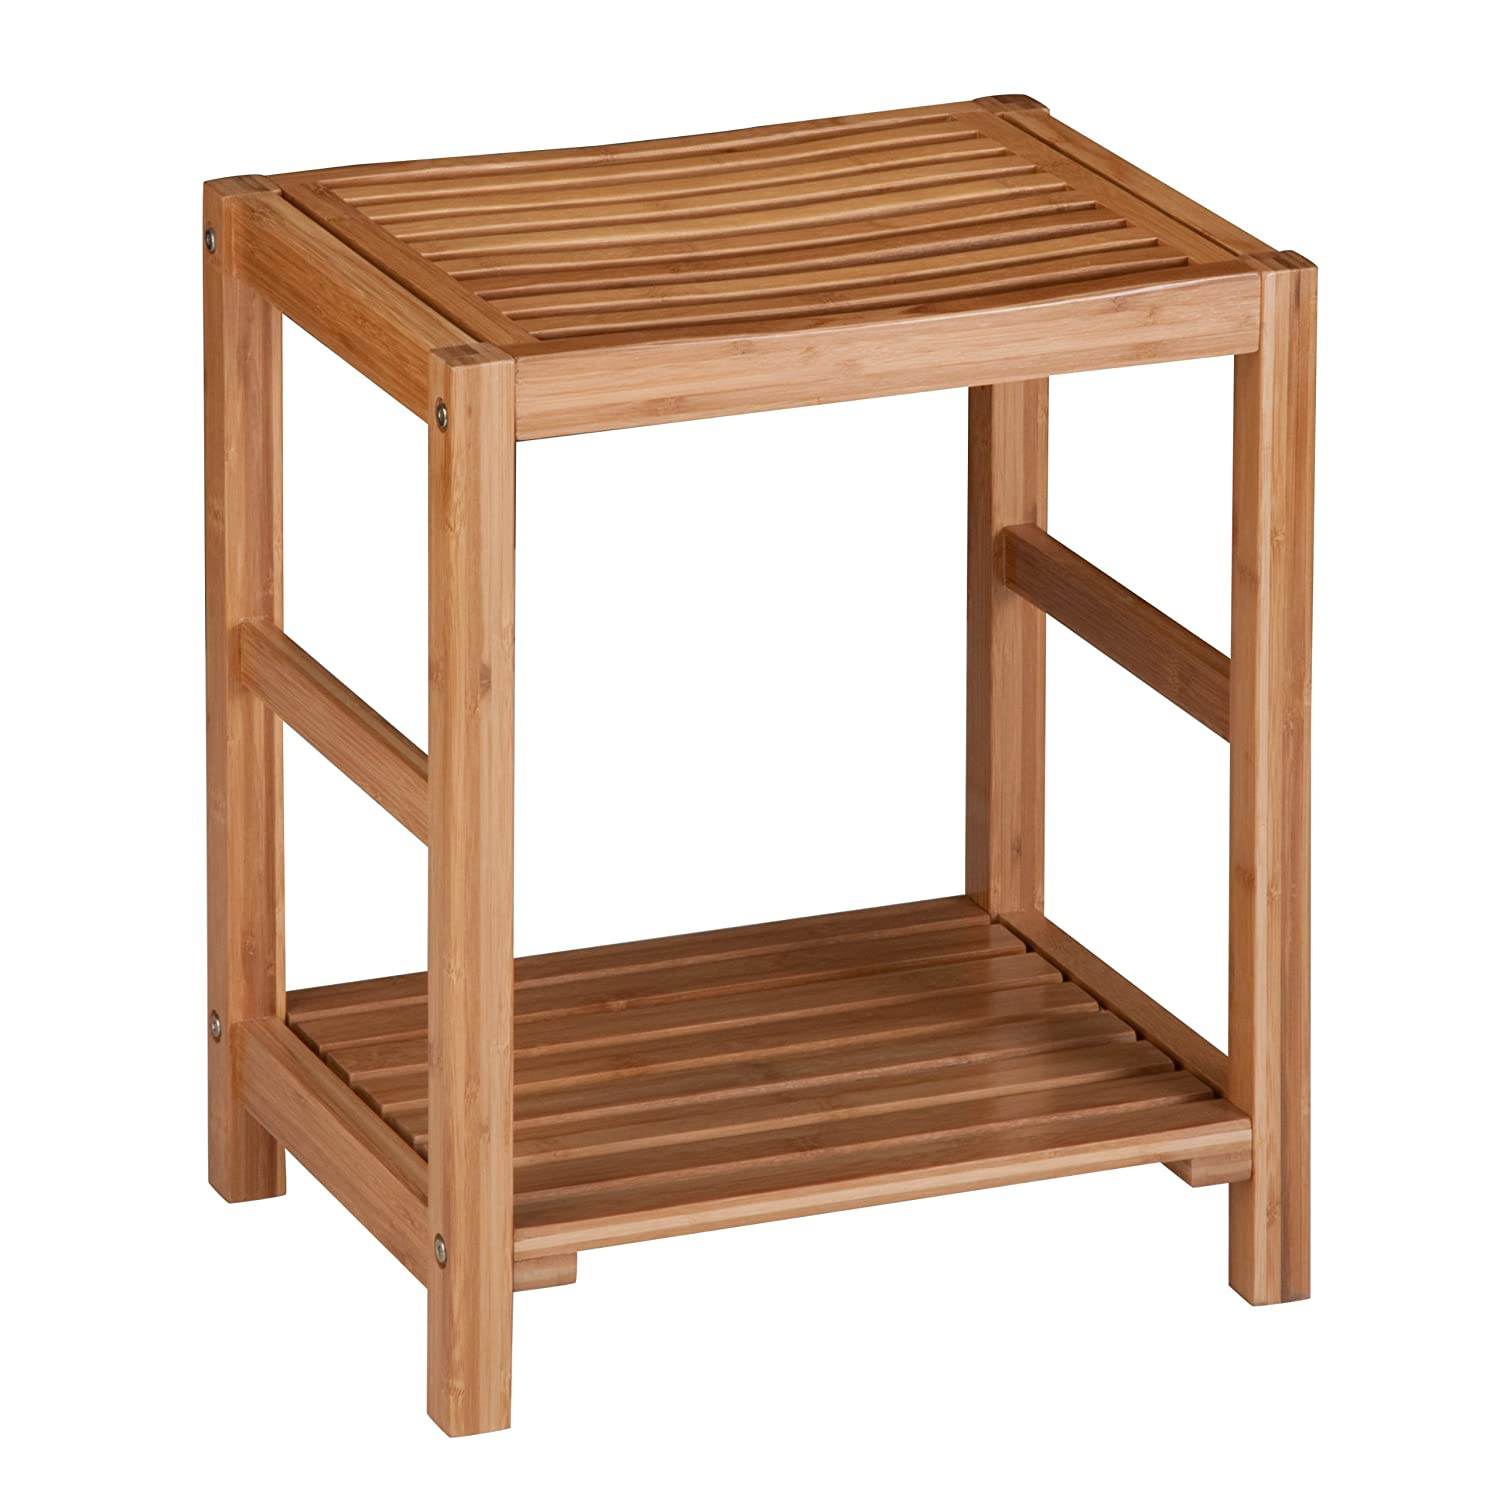 Honey-Can-Do BTH-02100 Bamboo Spa Bench with Contoured Seat, 12.6